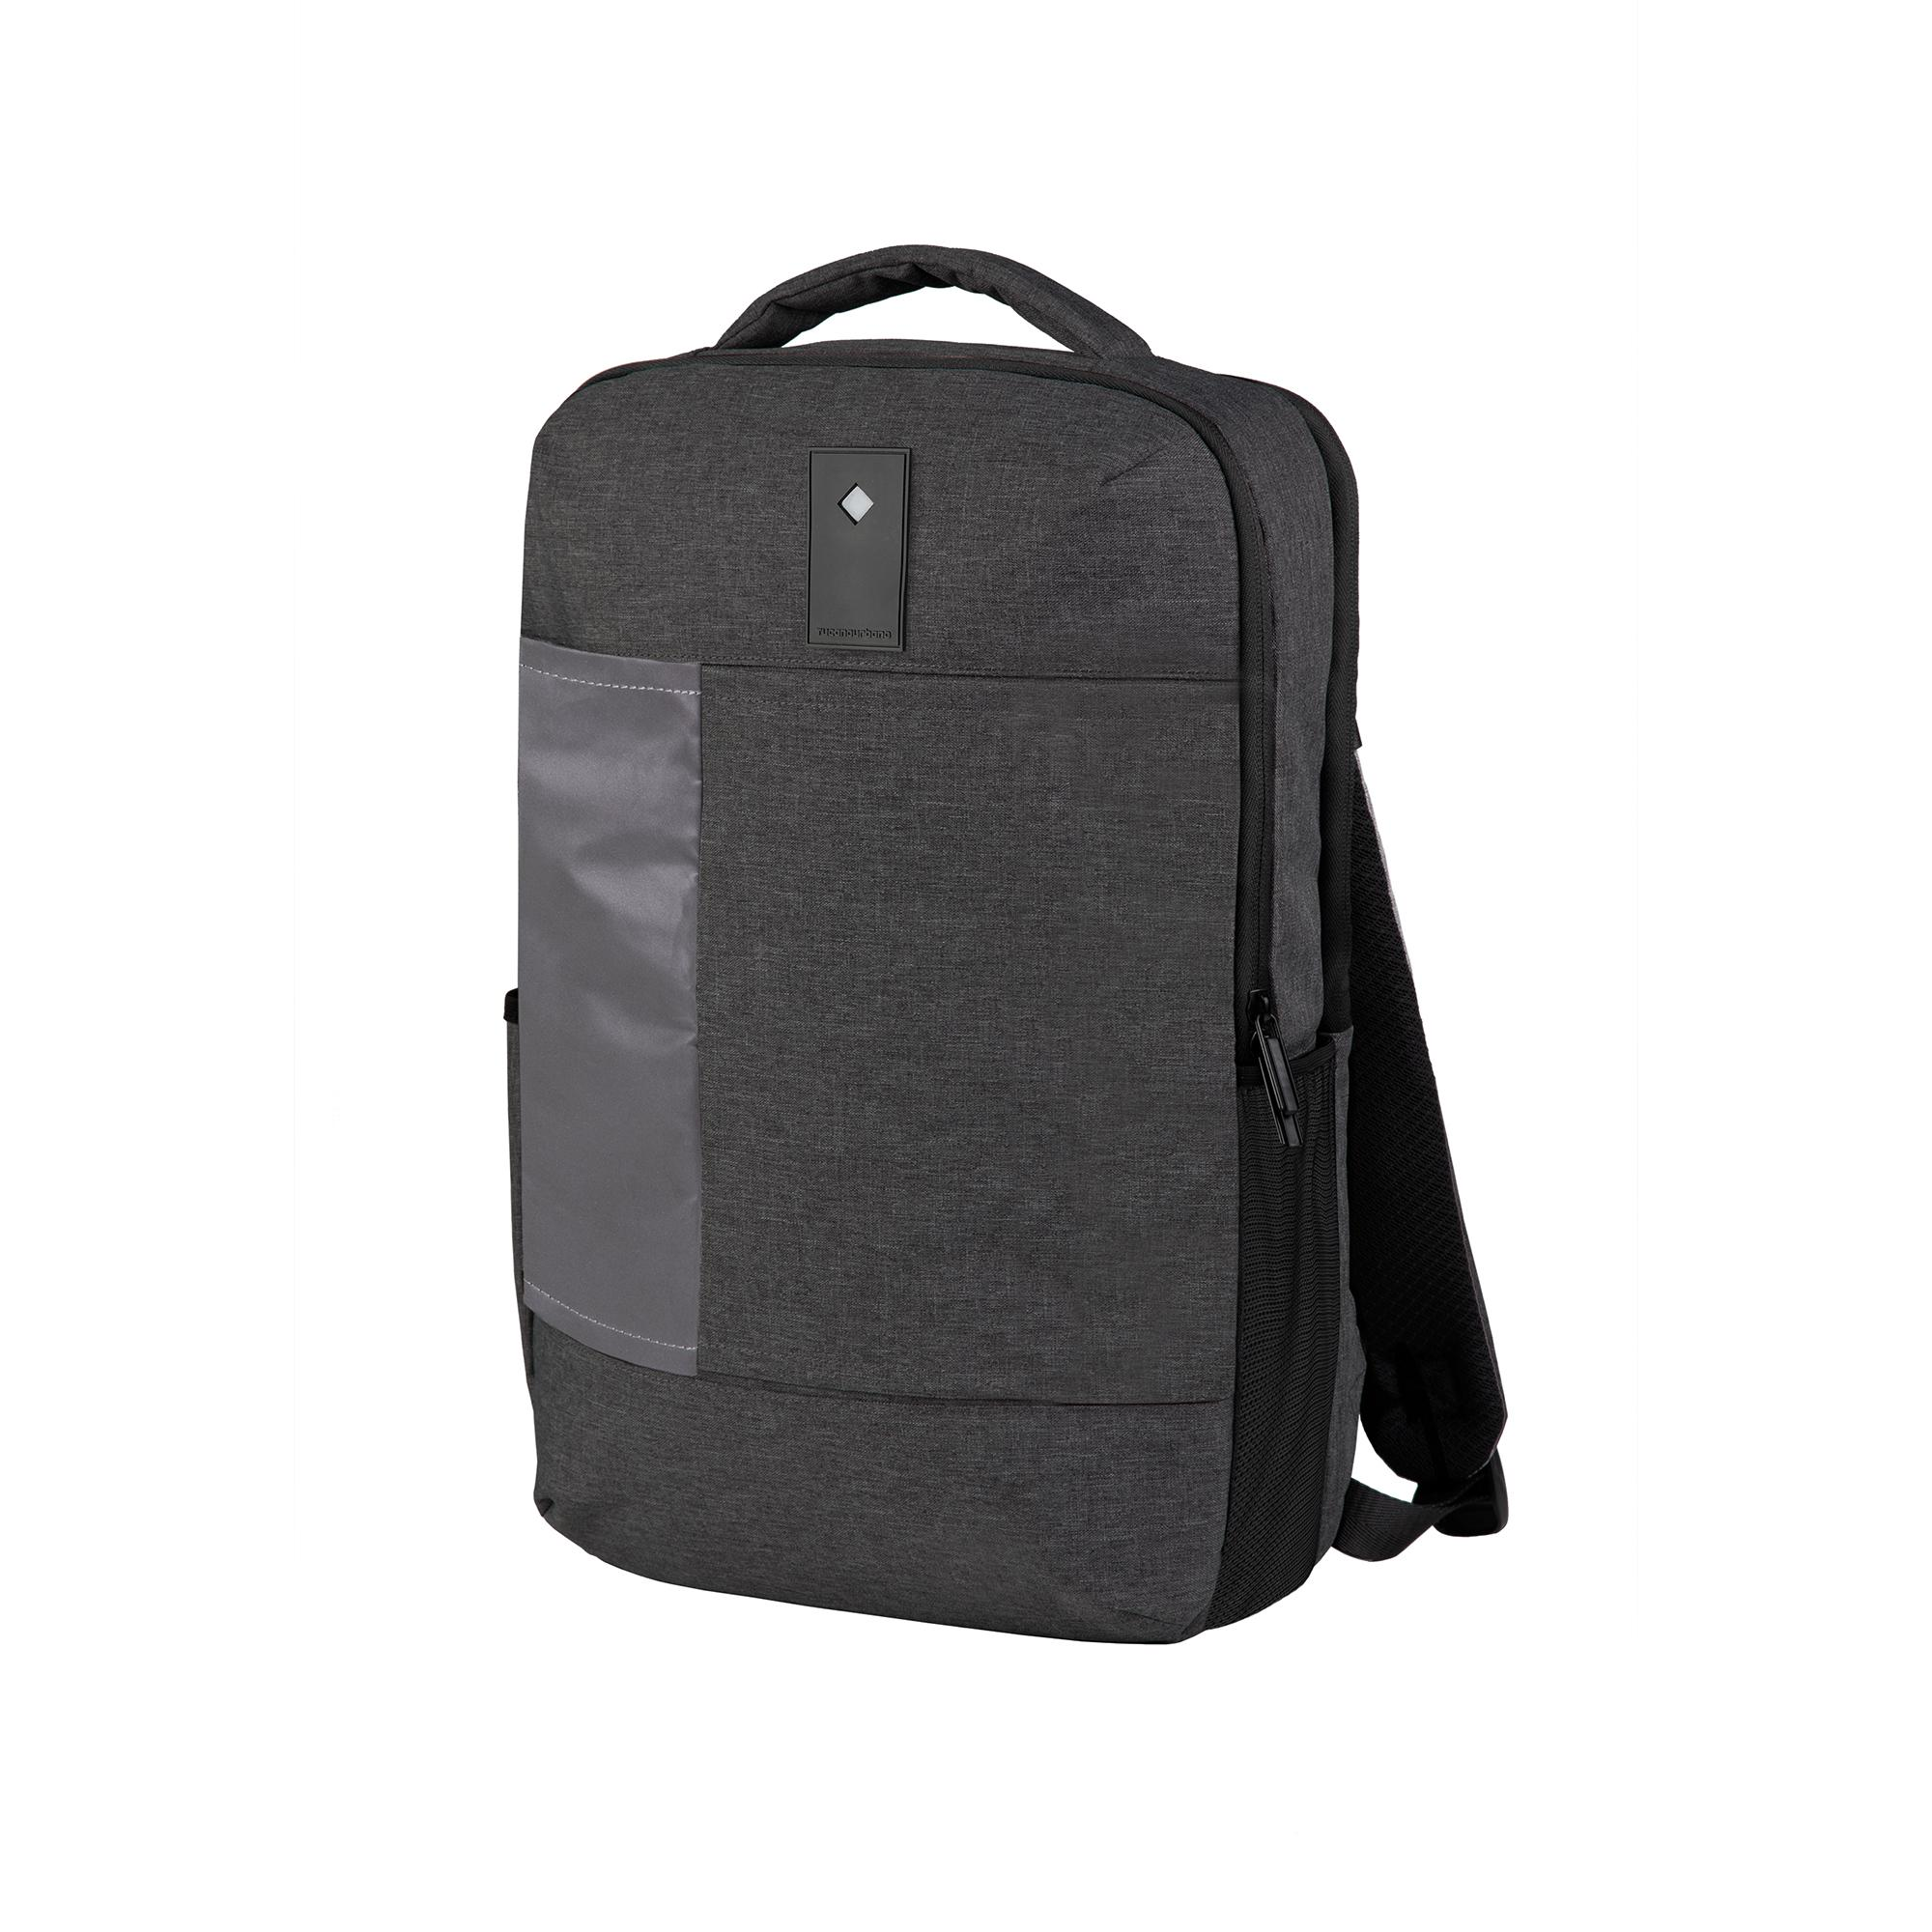 Zaino Tucano Urbano Smart Pack